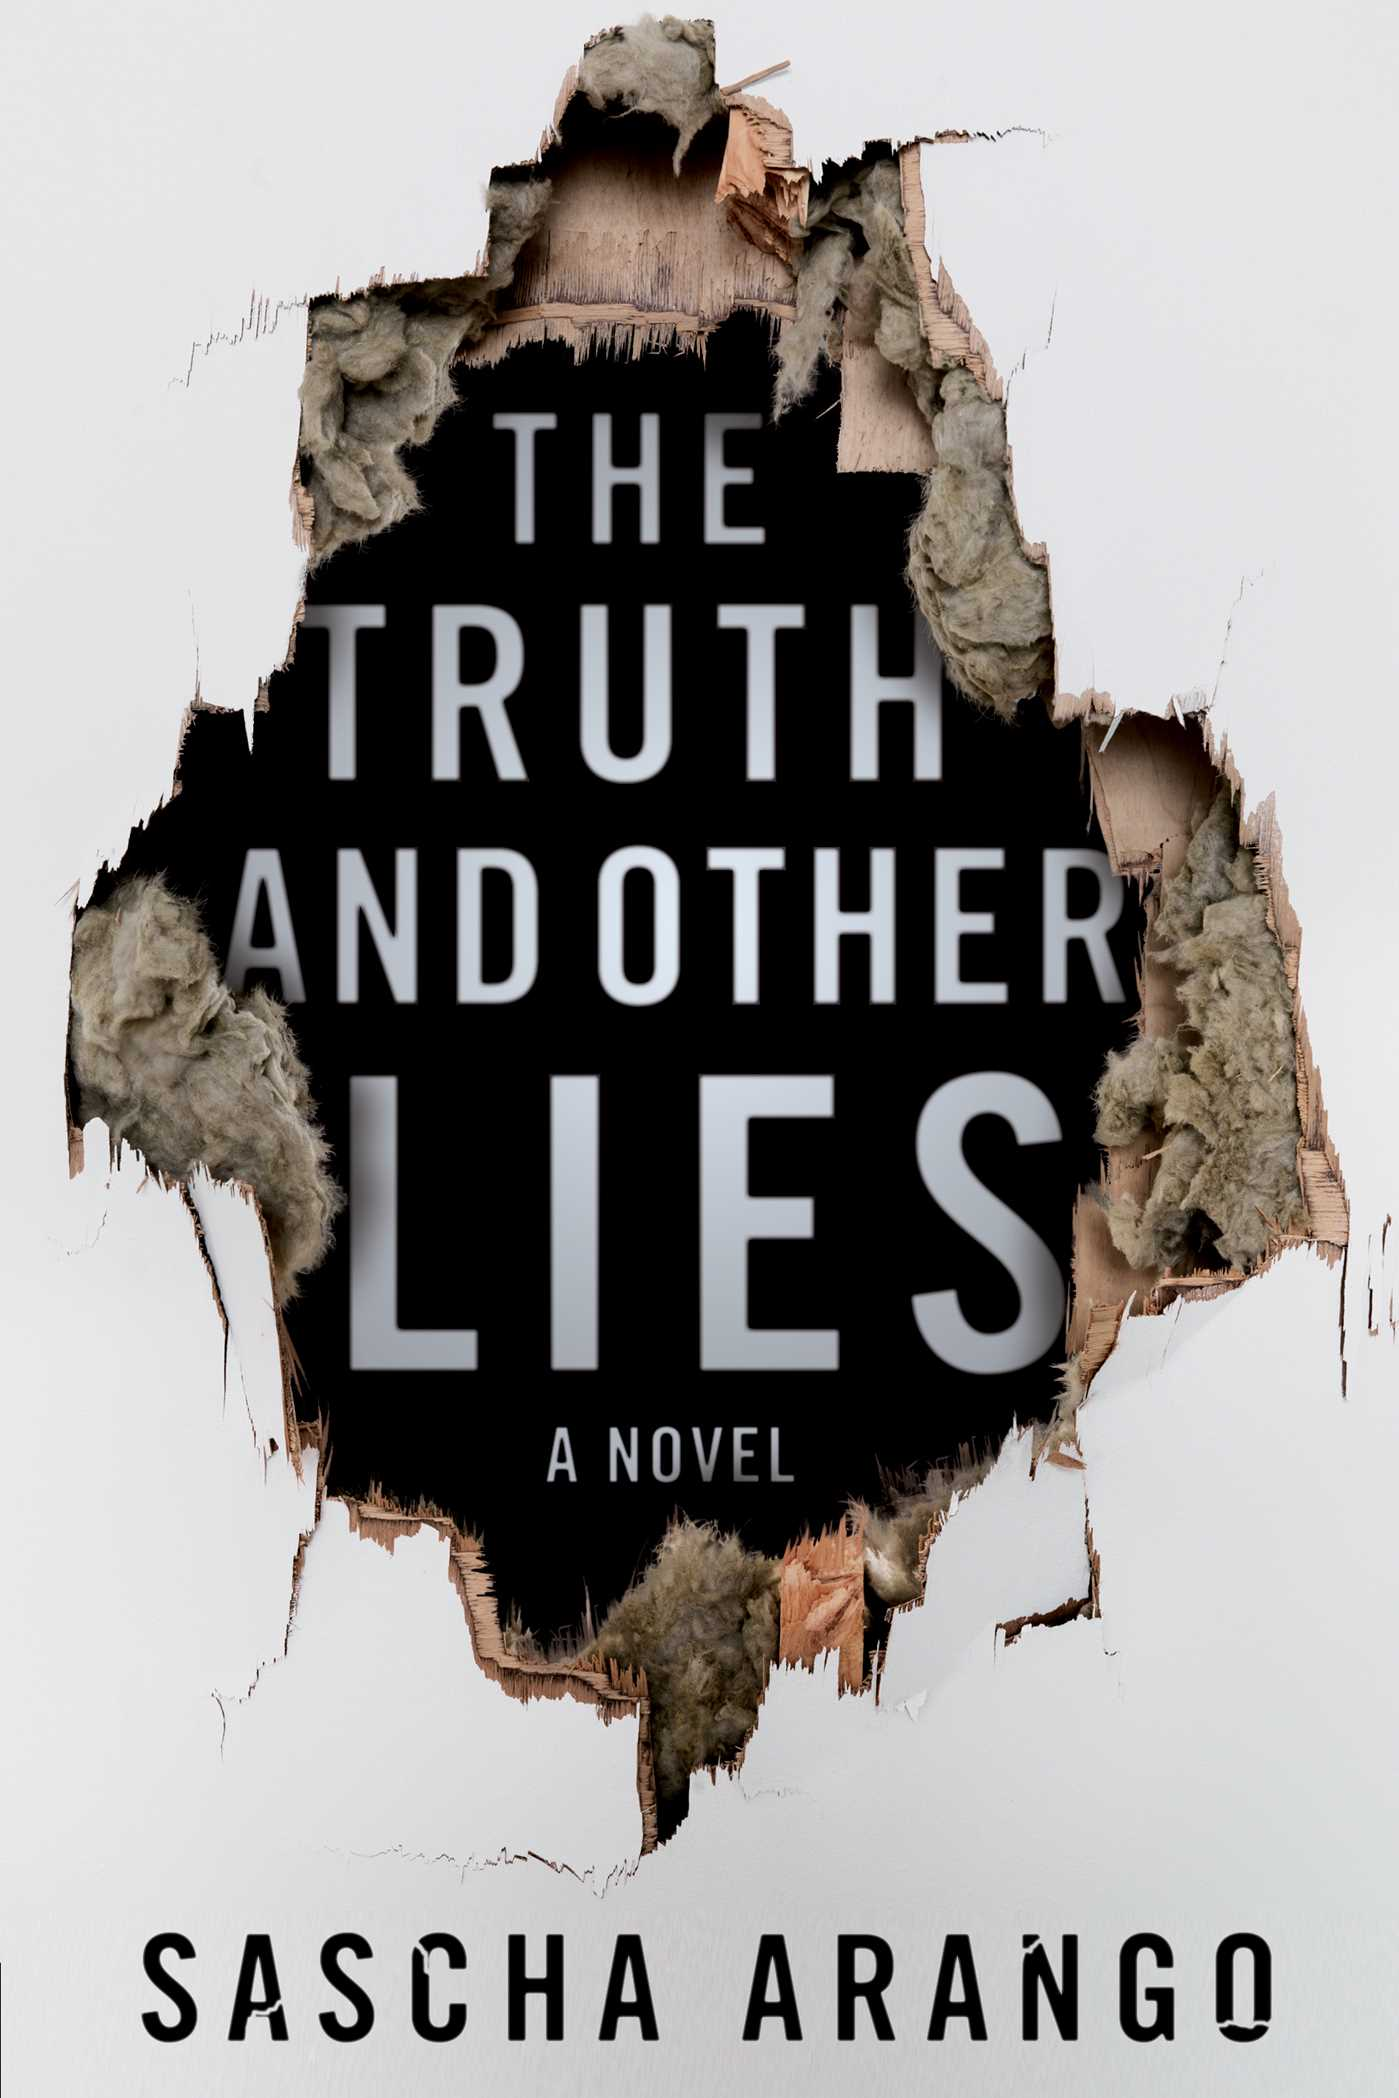 The truth and other lies 9781476795553 hr